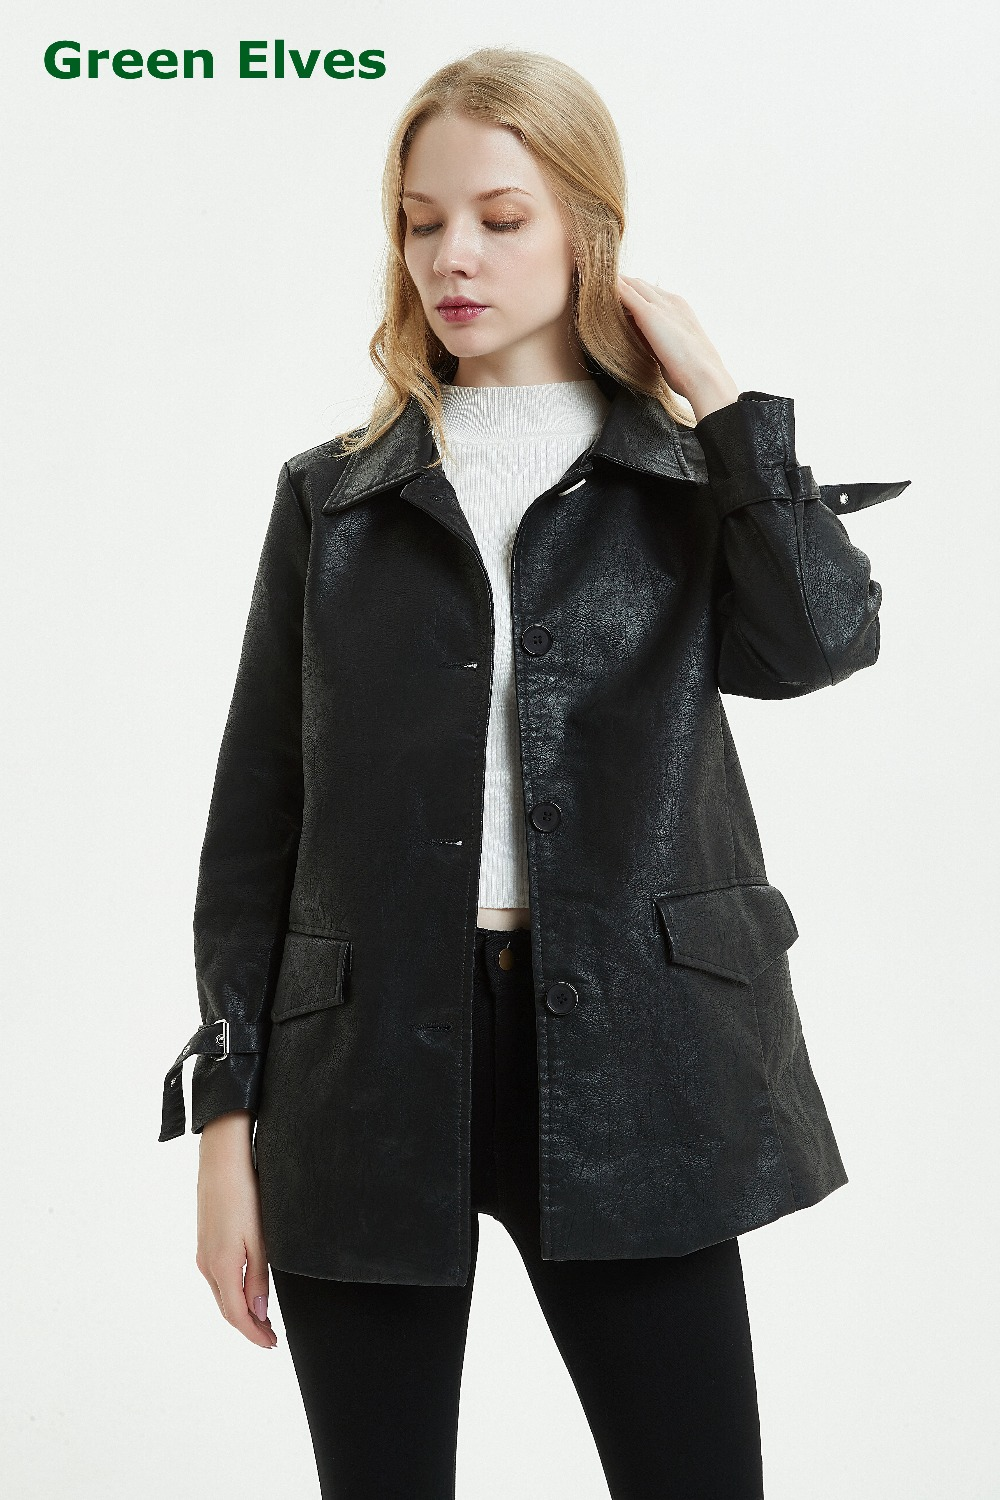 Autumn Winter Mid-Long Faux Leather Coat Trench Ladies Single Breasted Black Slim PU Leather Jacket Women Overcoat With Belt